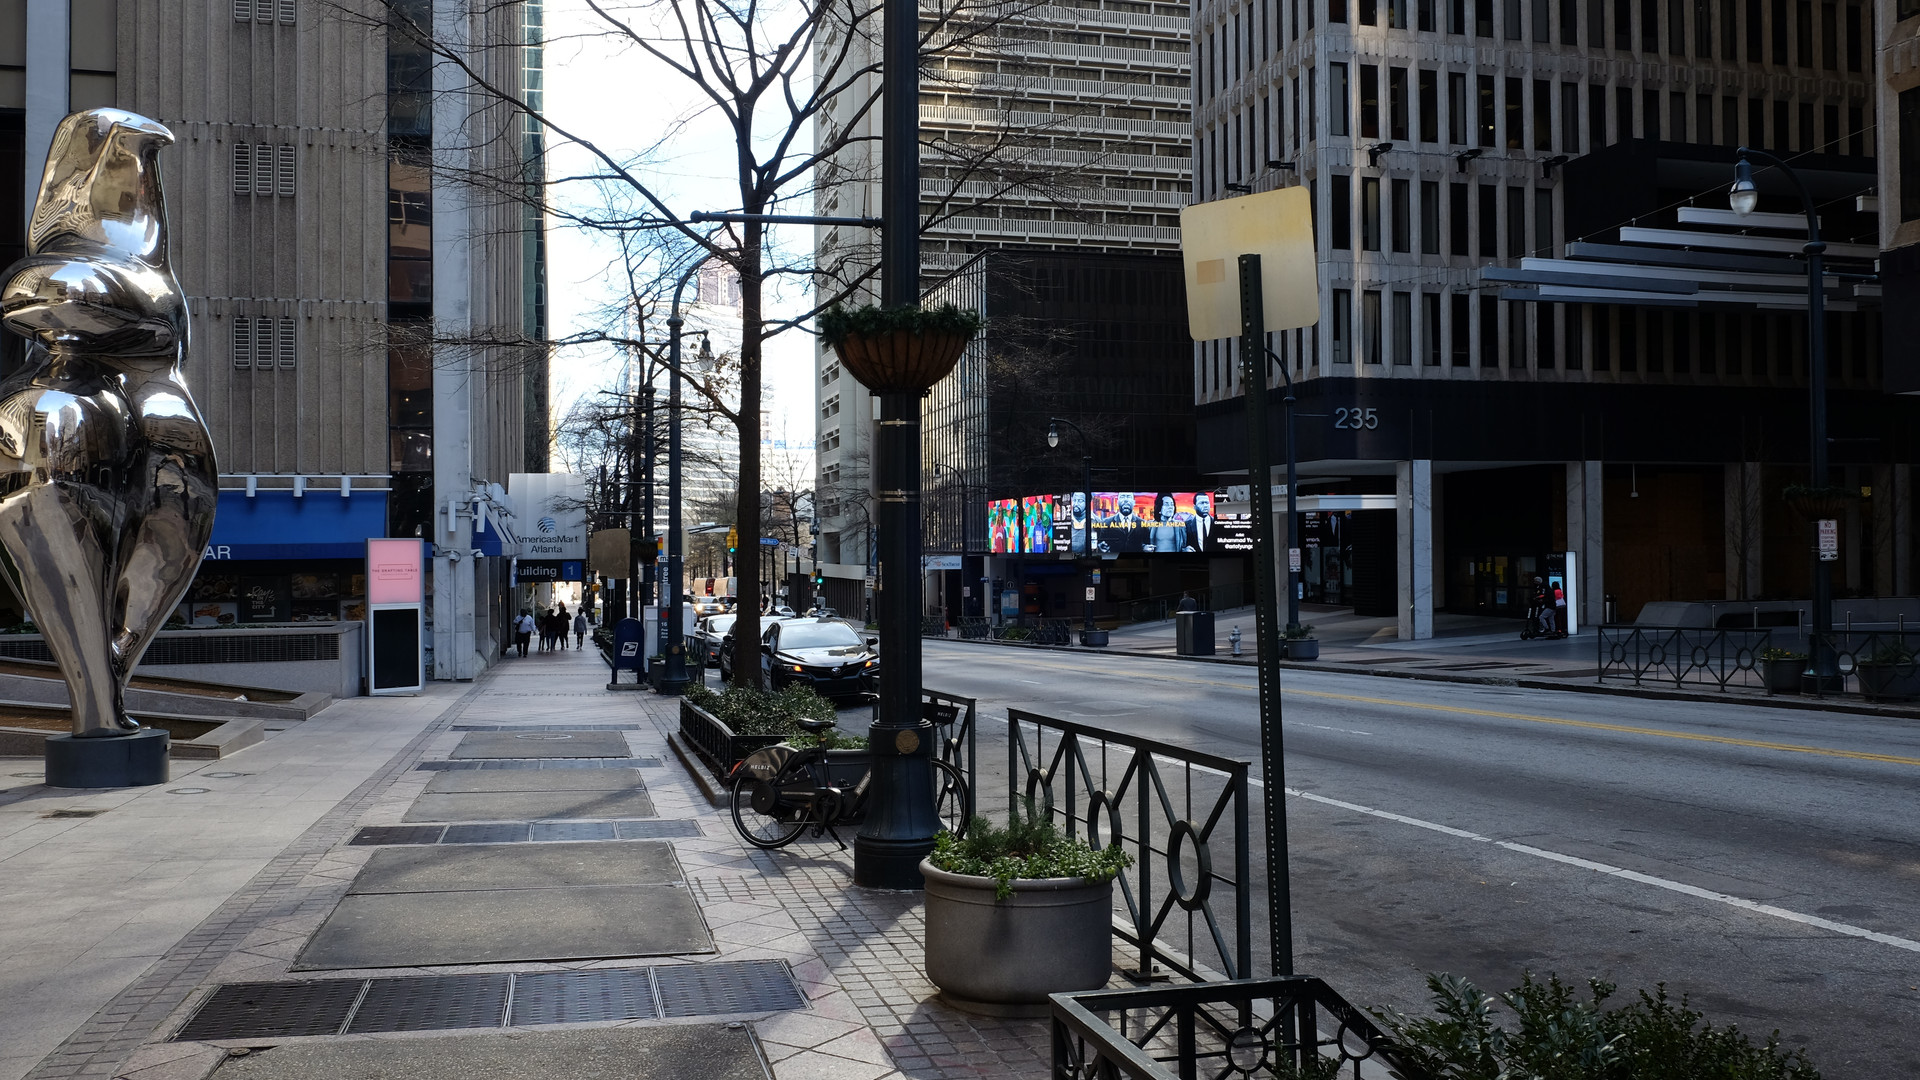 Peachtree Street between Hotel Indigo and Peachtree Center